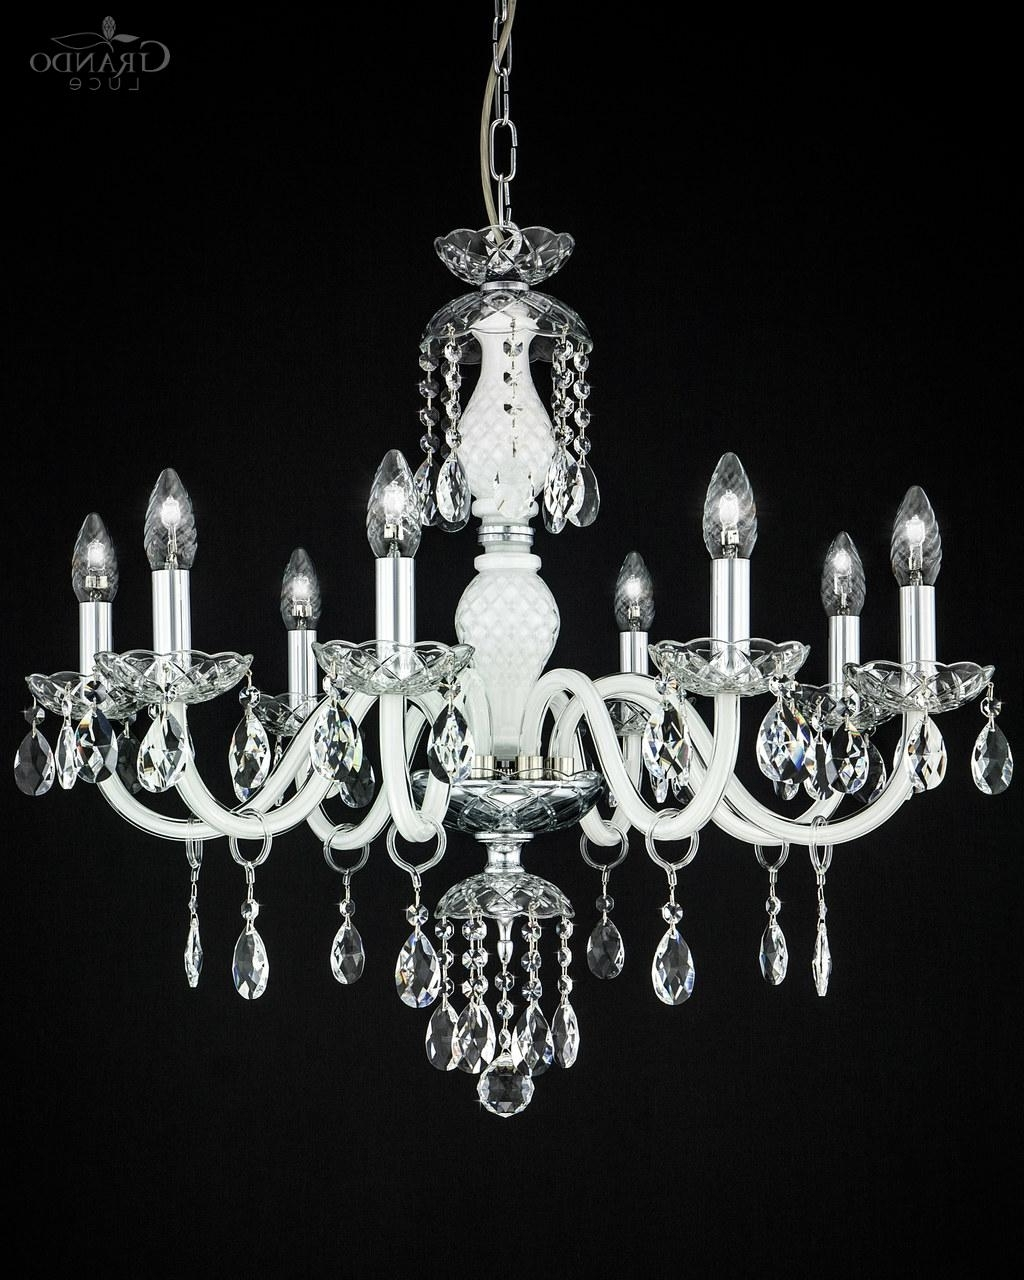 Widely Used White And Crystal Chandeliers In 104/ch 8 Chrome White Crystal Chandelier With Swrovski Spectra (View 14 of 15)